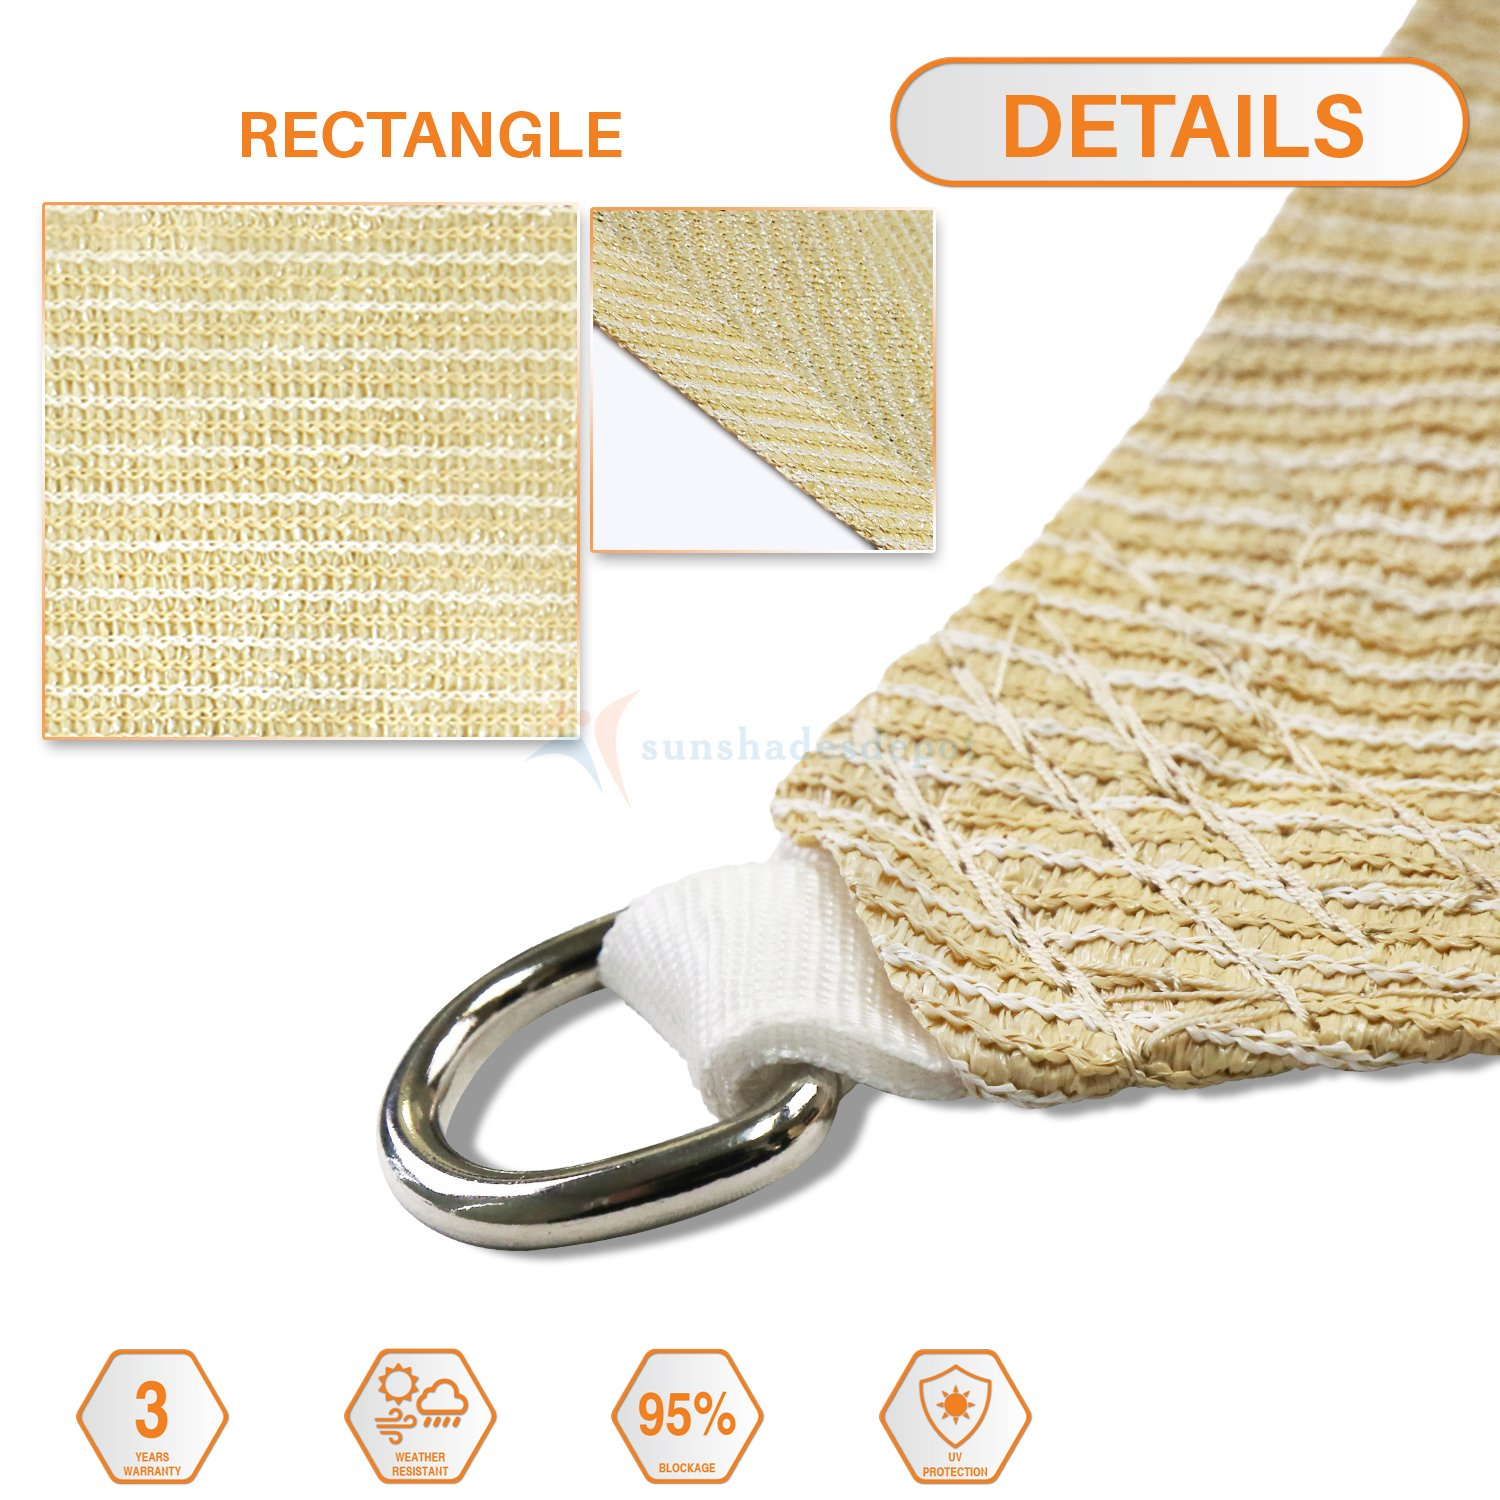 TANG Sunshades Depot 8 x12 Beige Sun Shade Sail for Outdoor Facility and Activities 180 GSM with 6 Inch Hardware Kit Rectangle UV Block Durable Fabric Outdoor Canopy Custom